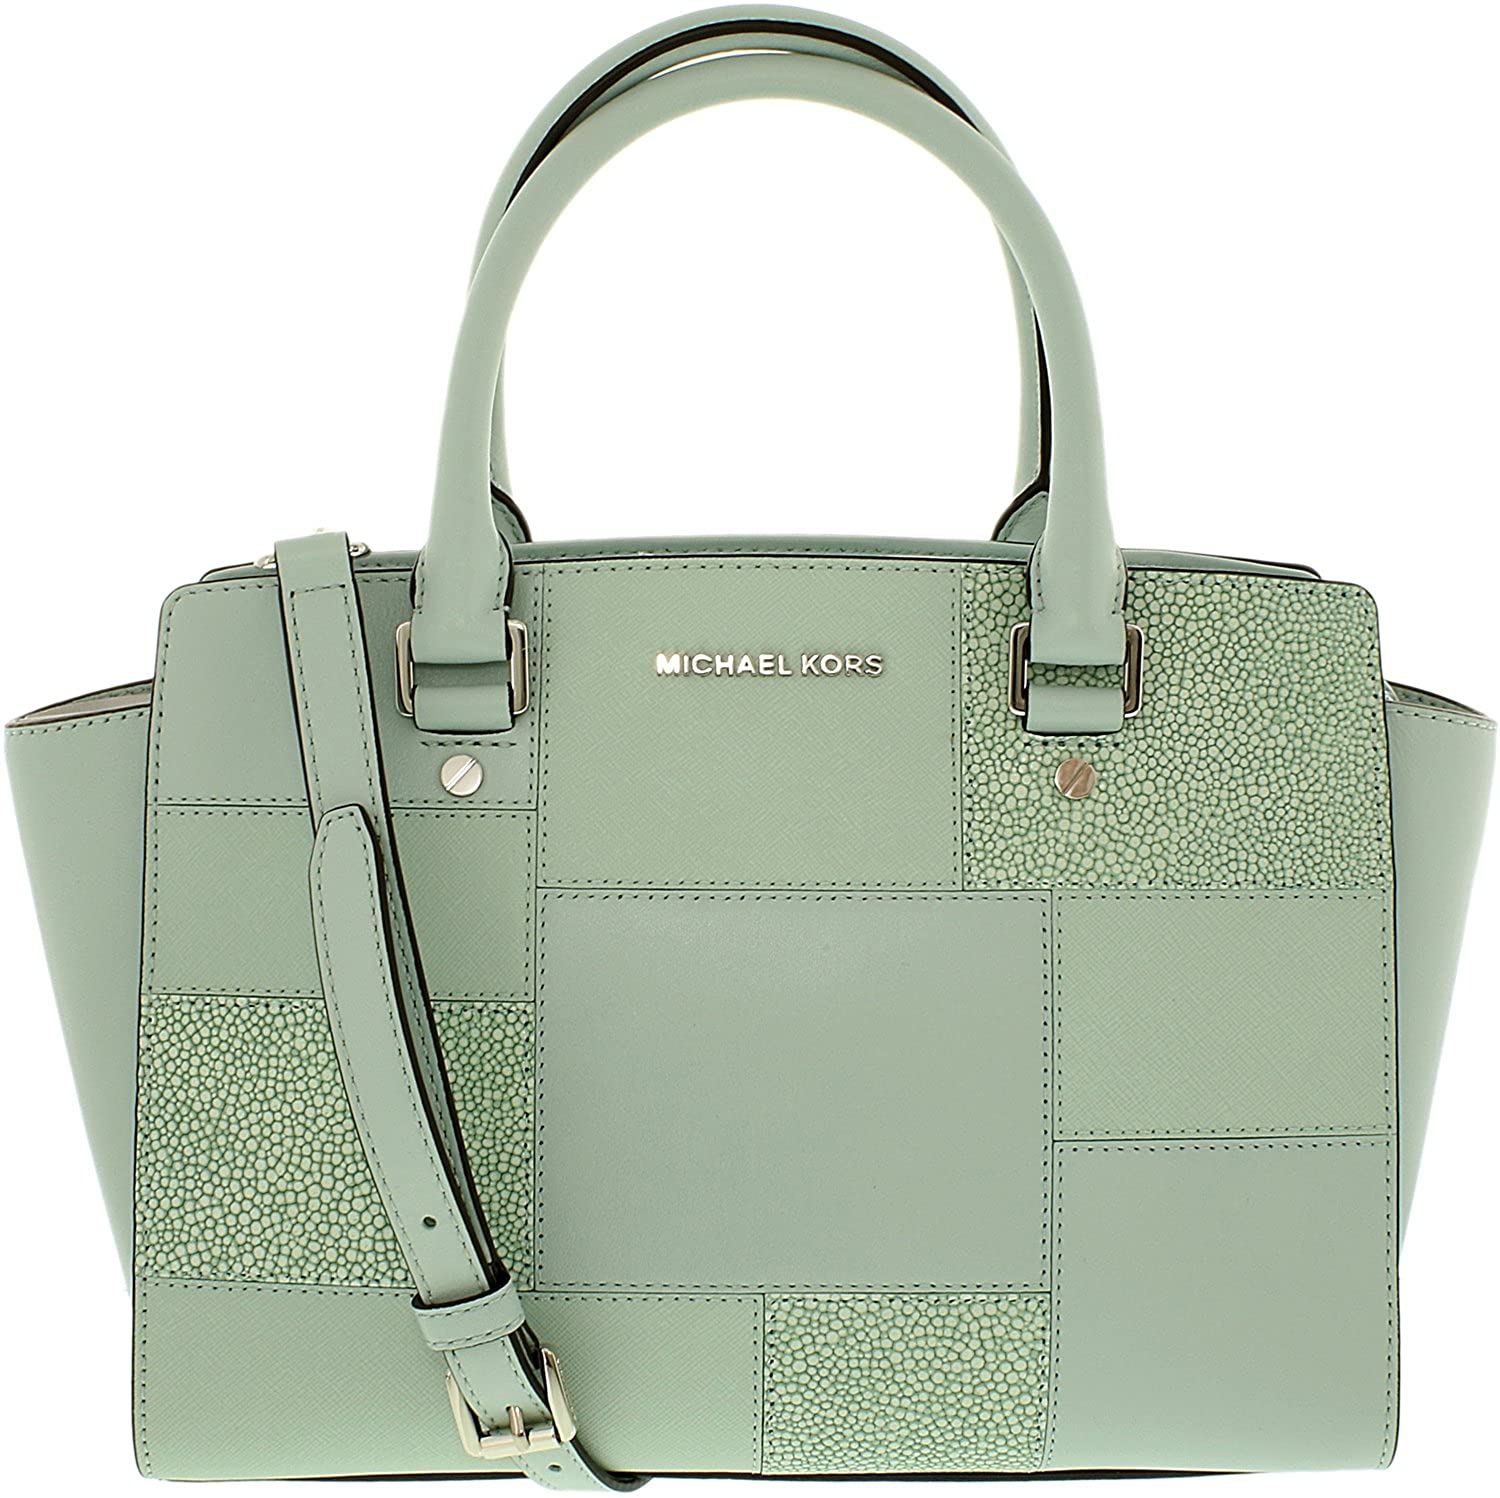 e1d0b2a007dd MICHAEL Michael Kors Womens Selma Leather Embossed Satchel Handbag Green  Medium  Handbags  Amazon.com